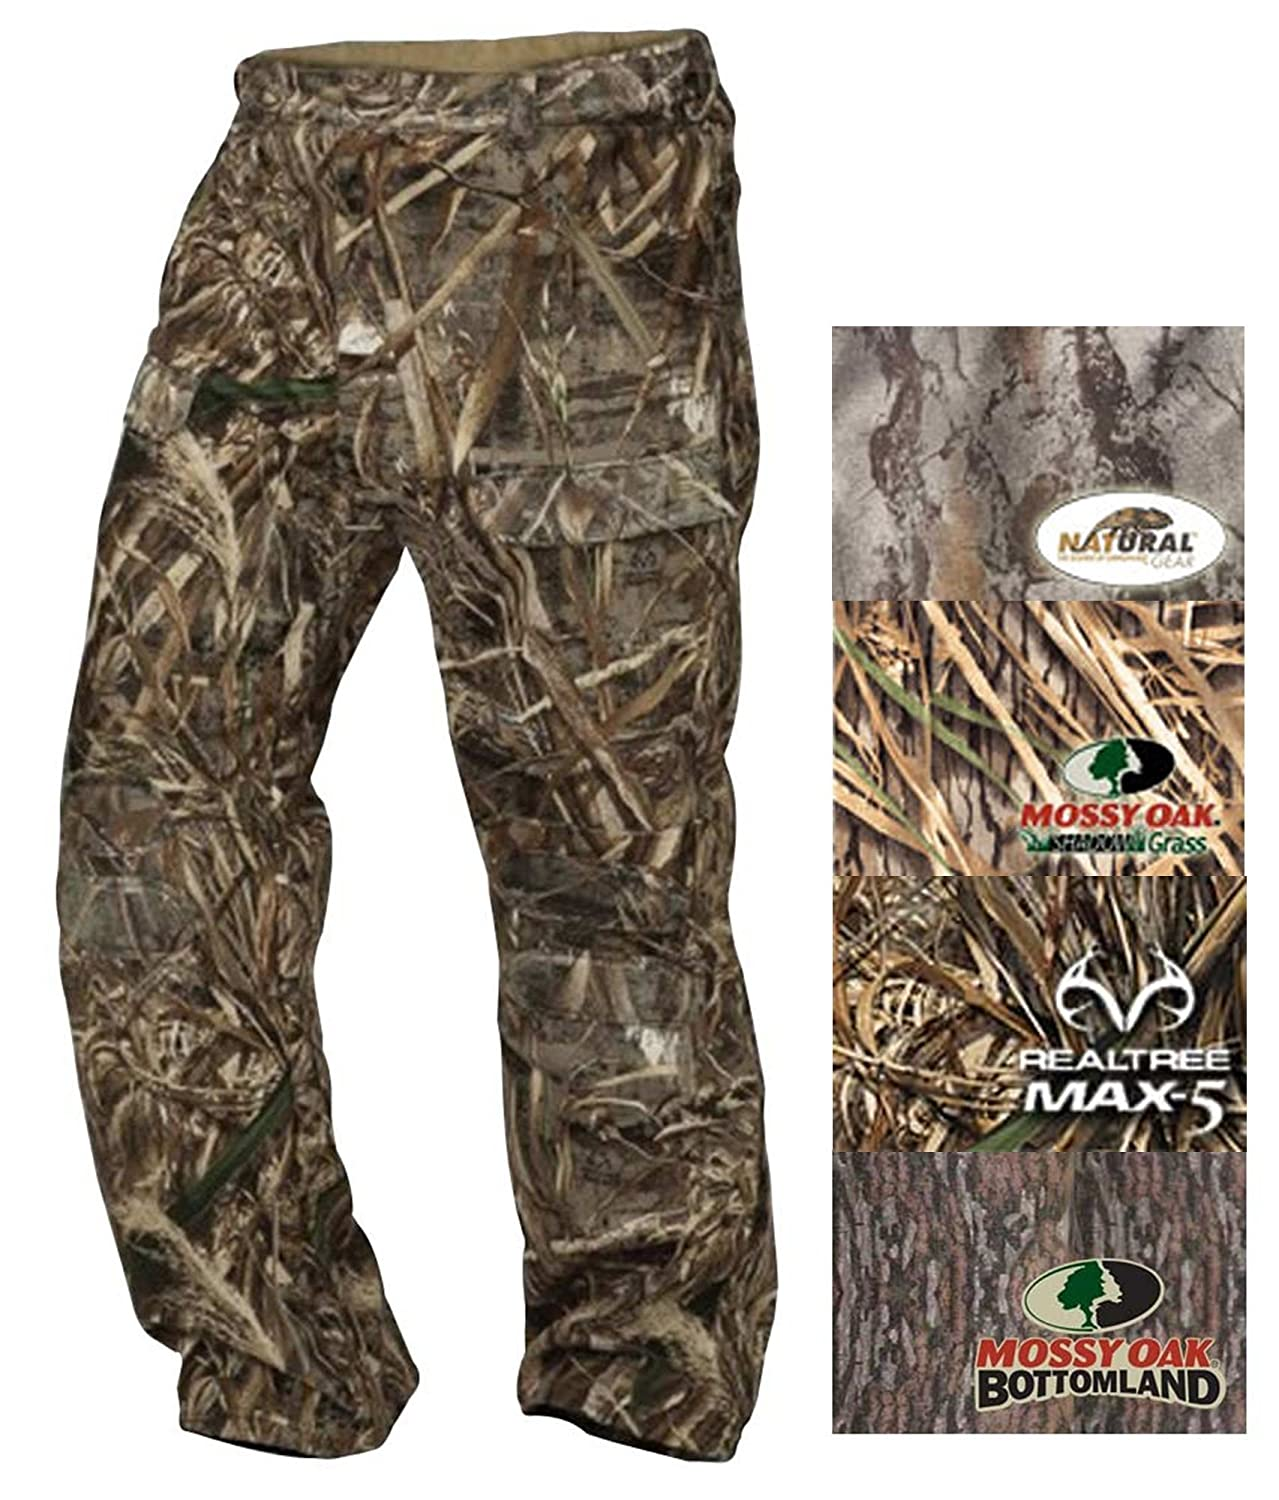 BandedギアホワイトRiver Wader Pants B016E1JTCI Large|Mossy Oak シャドーグラスブレード (Shadow Grass Blades)  Mossy Oak シャドーグラスブレード (Shadow Grass Blades)  Large